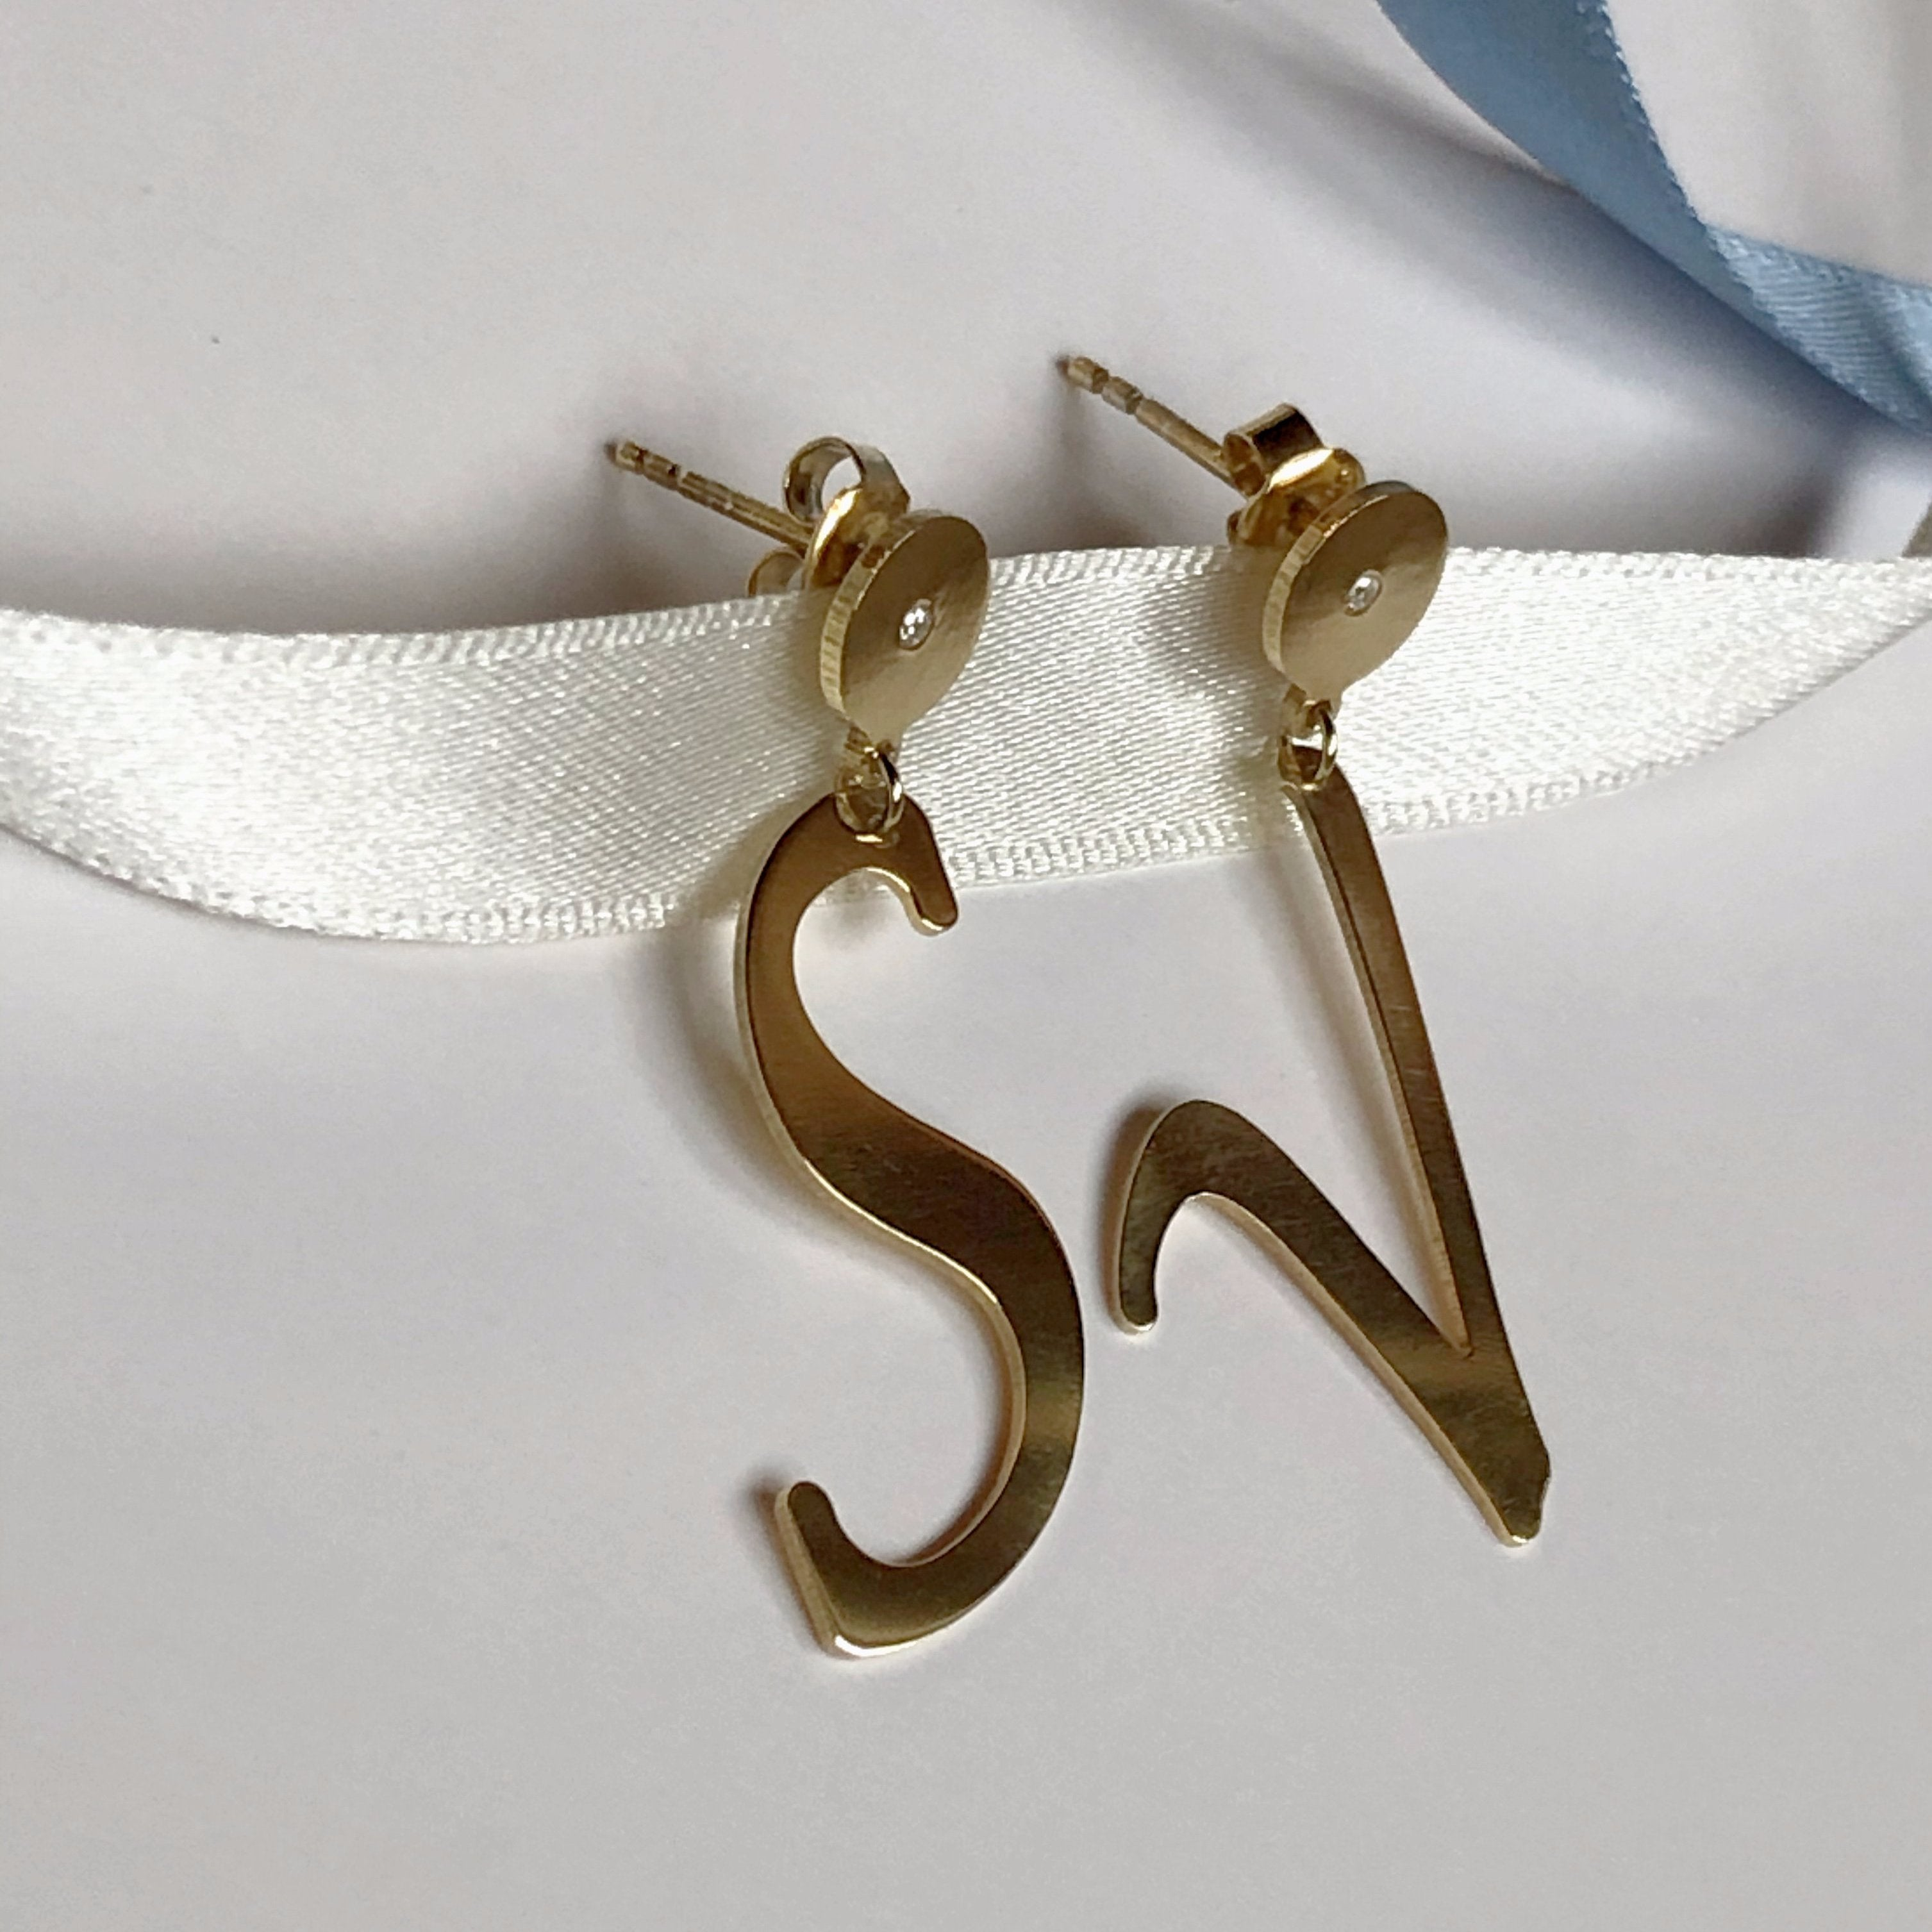 LETTRES SPЀCIALES earrings - BYVELA designer jewellery in silver and gold